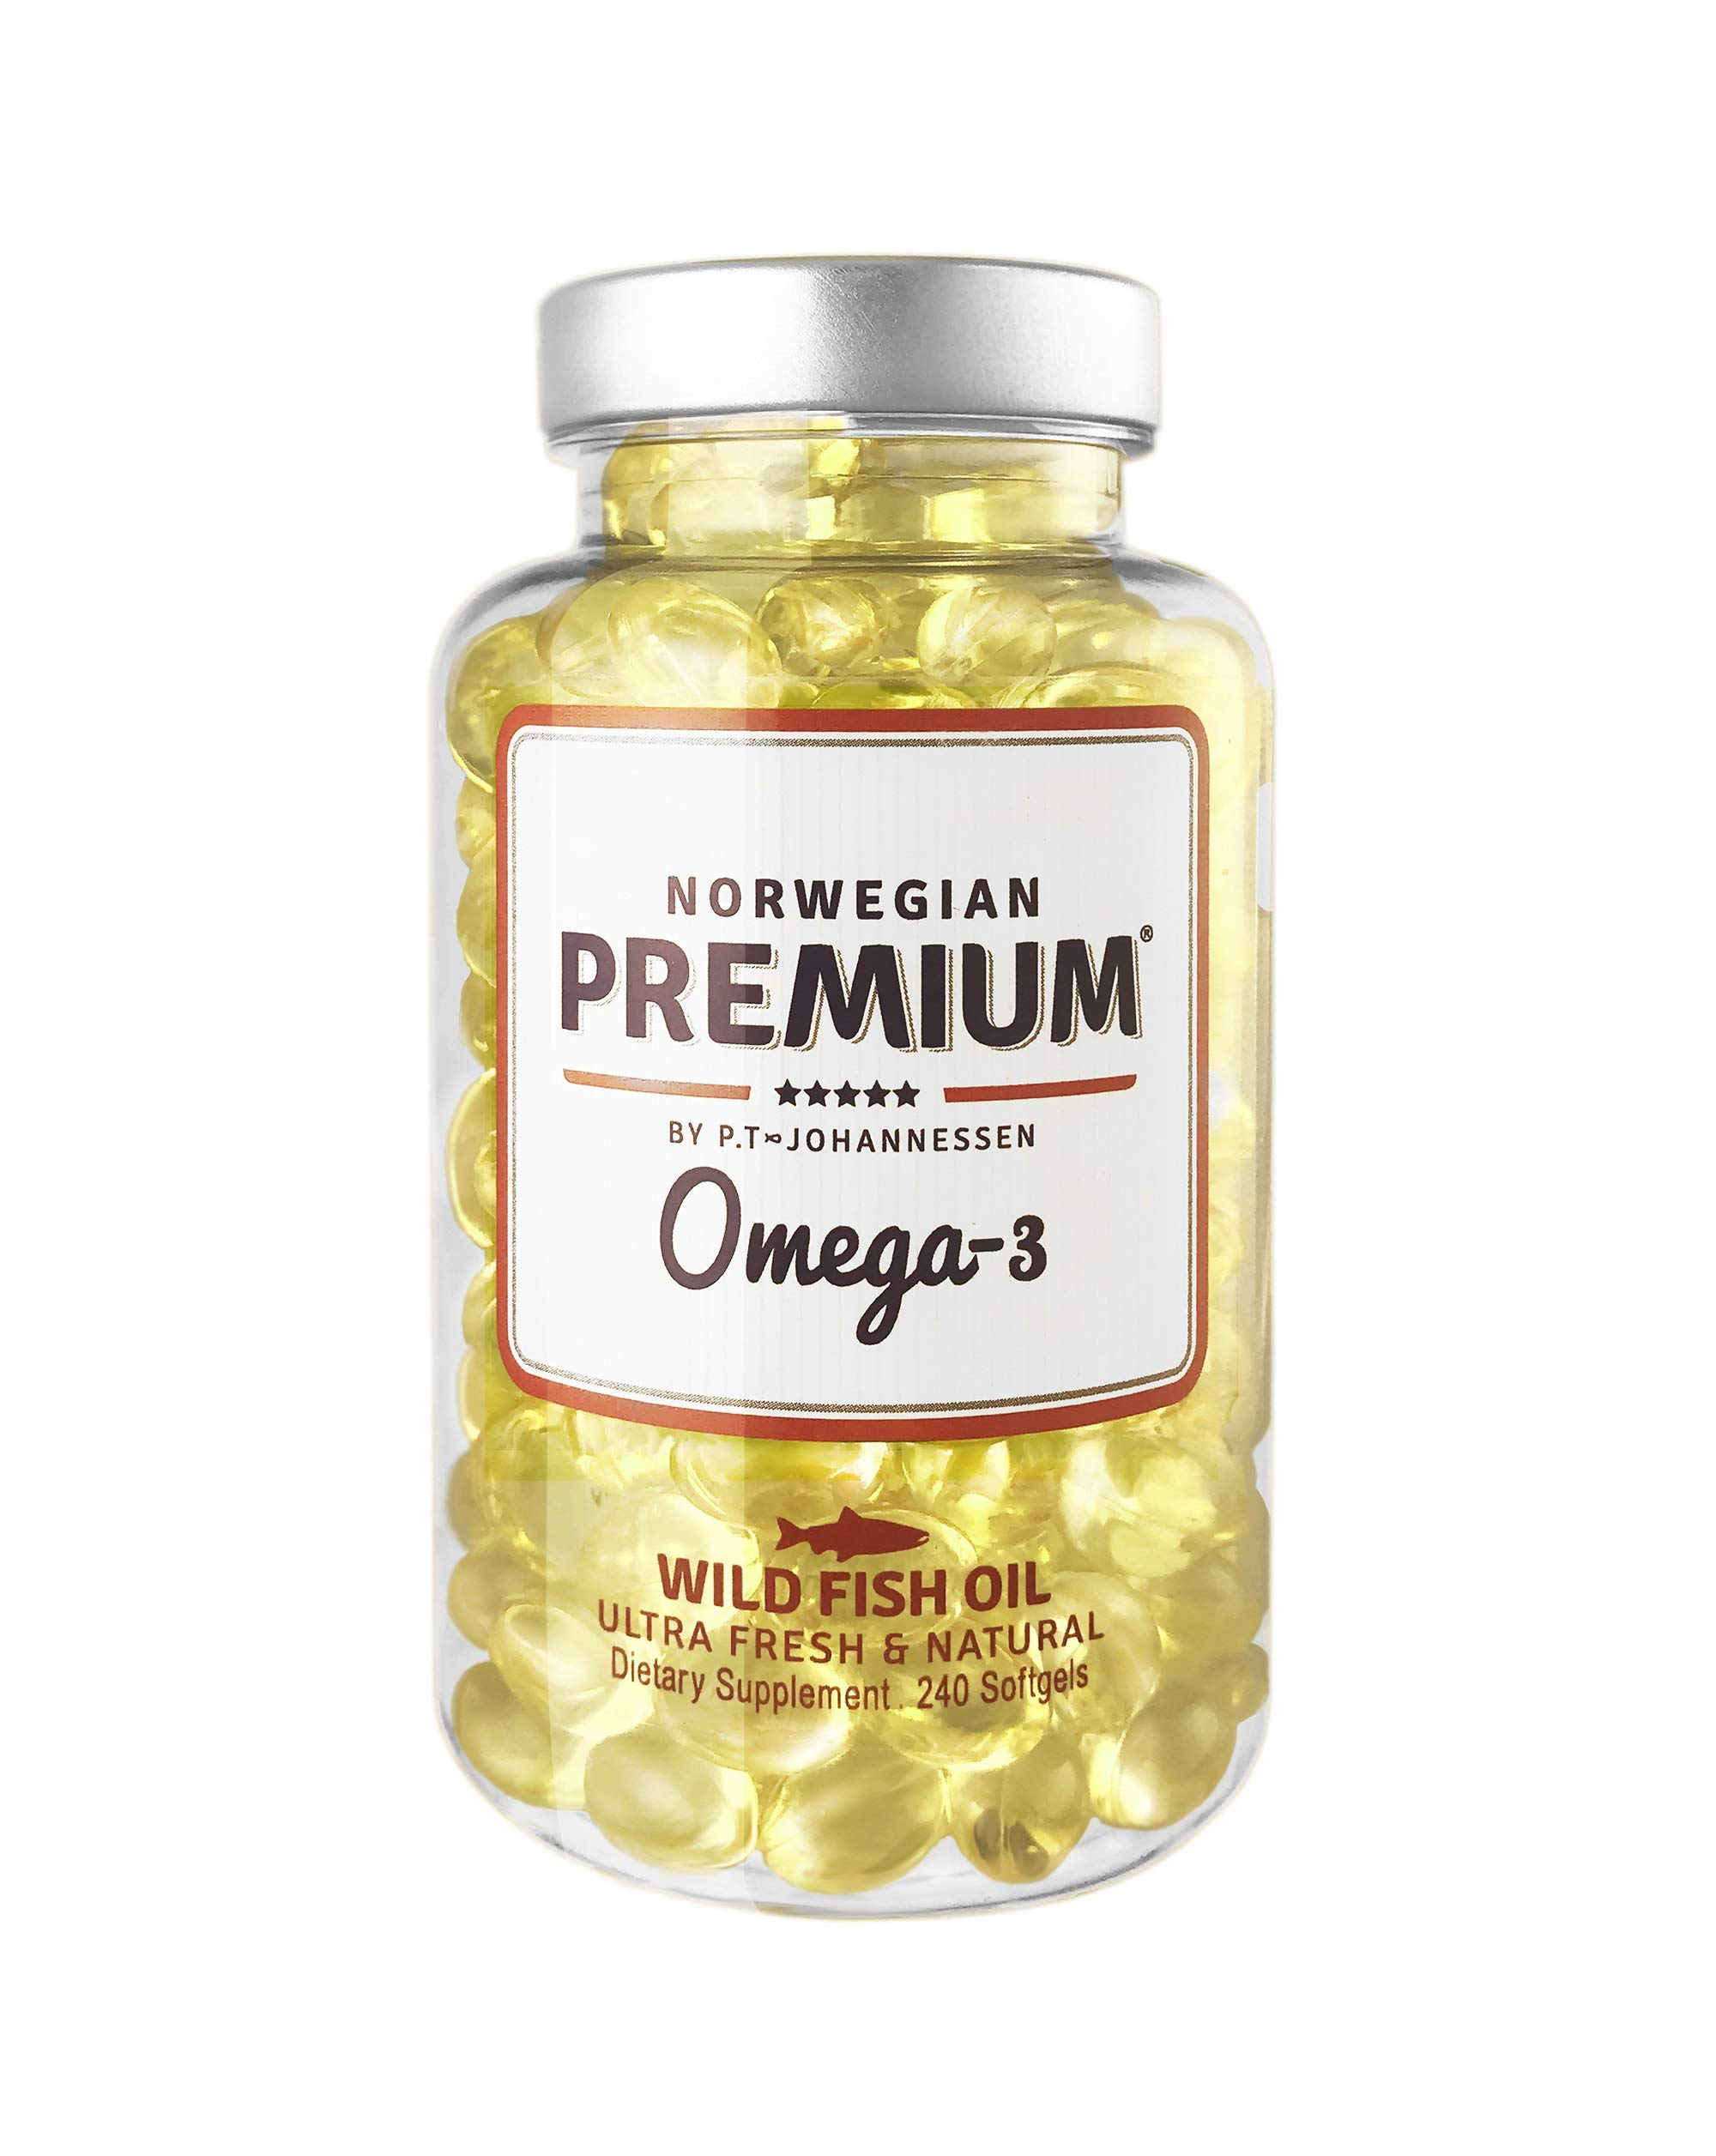 Norwegian Premium Omega-3 by P.T-Johannessen Ultra Fresh not from Concentrate burpless Fish Oil. Made in Norway. (240 Capsules (Wild Fish))